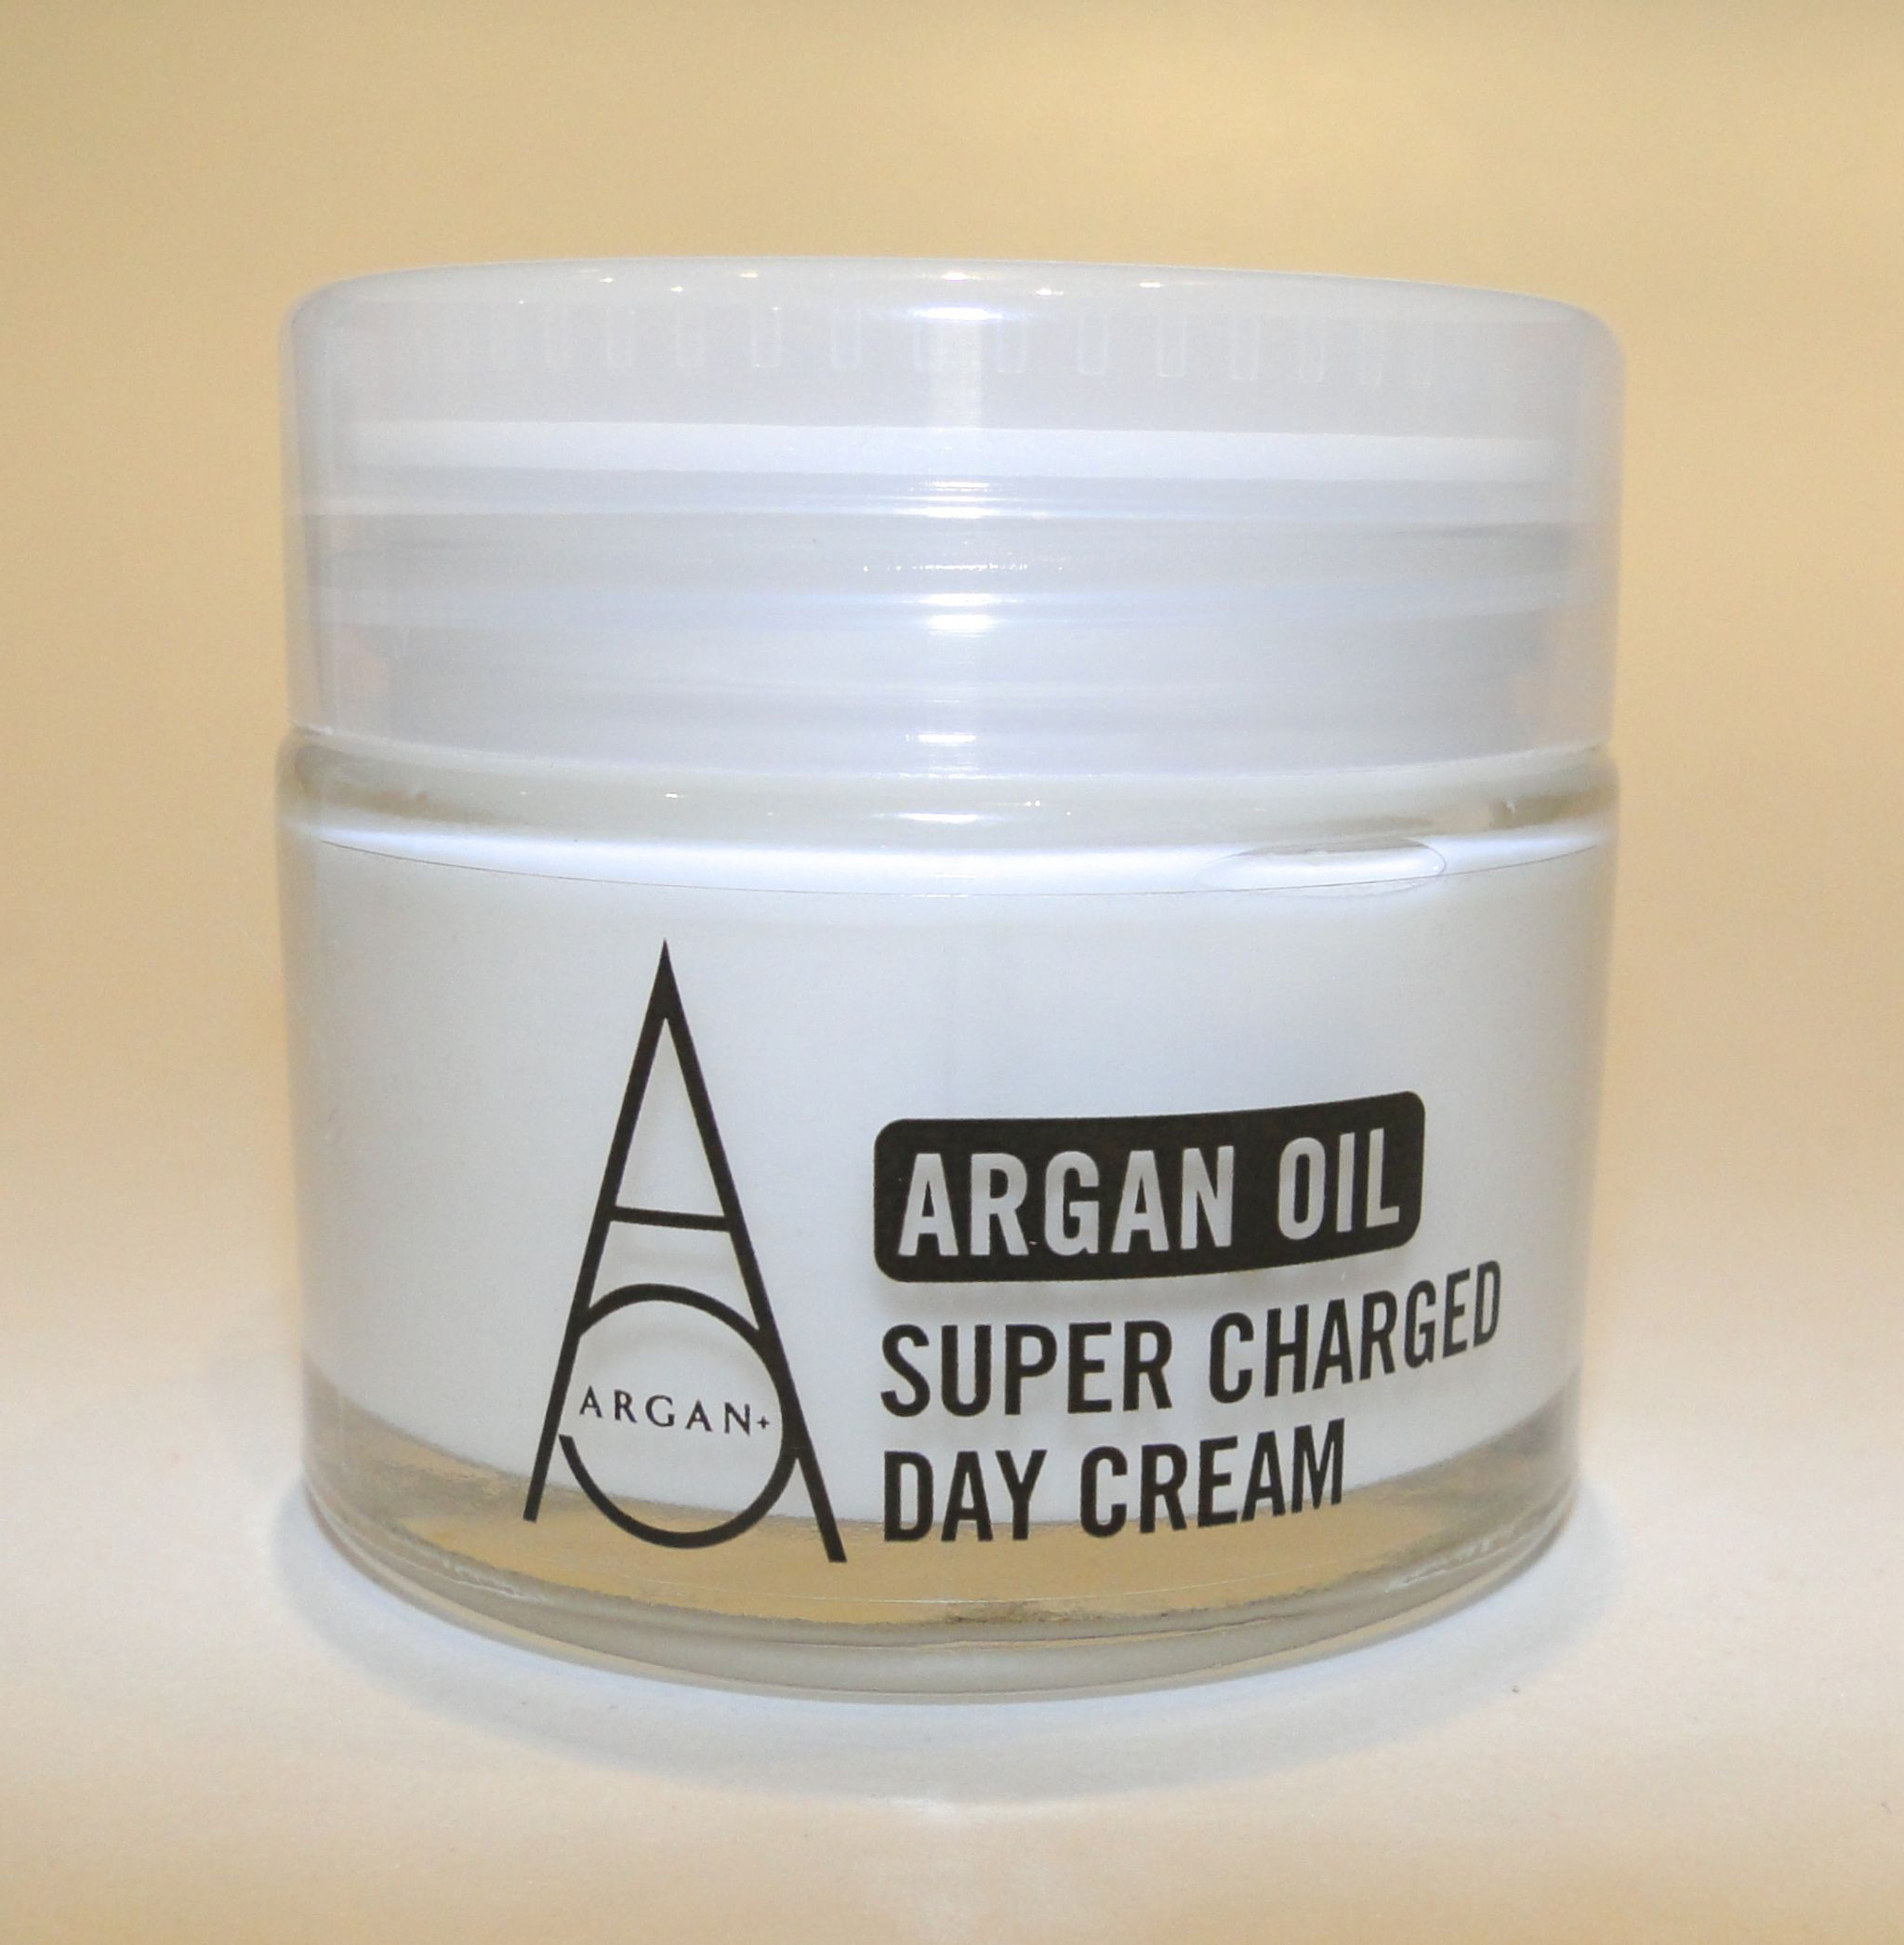 Argan 5 Super Charged Day Cream 1